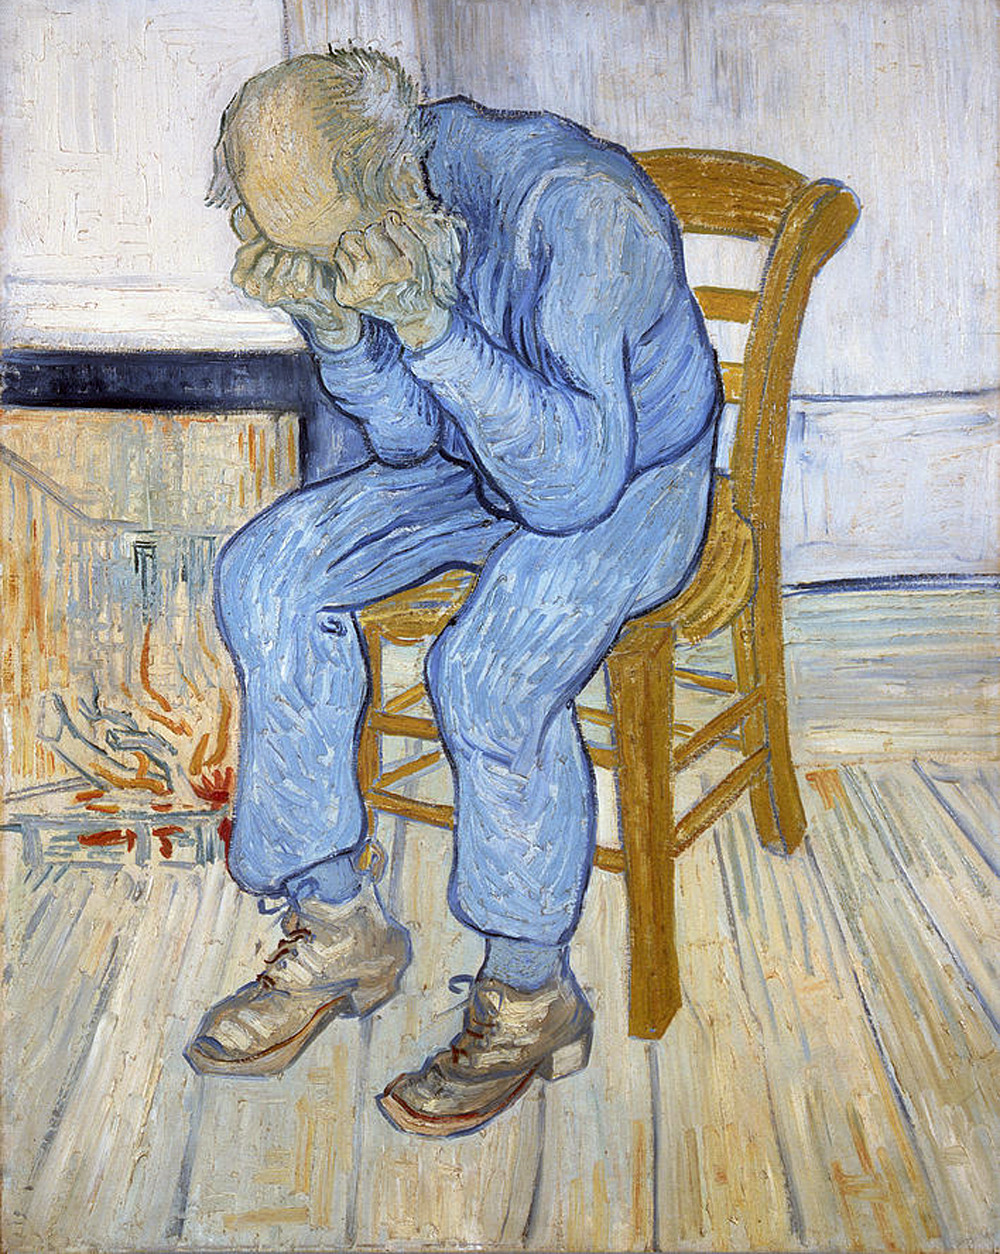 Vincent van Gogh - Old Man in Sorrow (On the Threshold of Eternity, 1890)